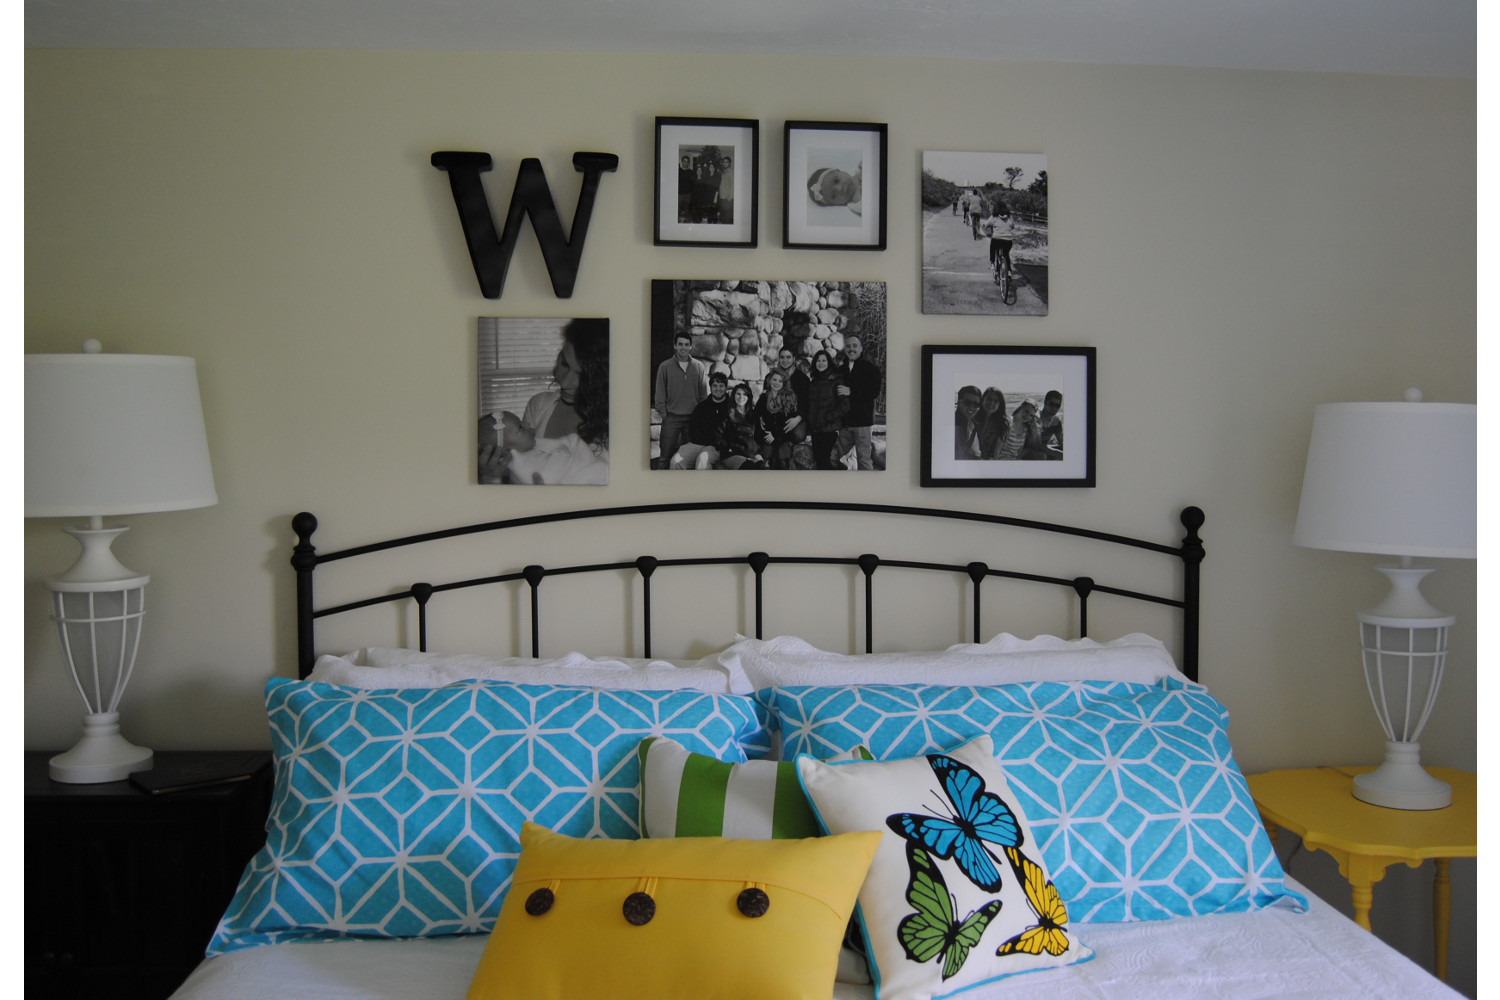 Photo Walls and Accessory Styling